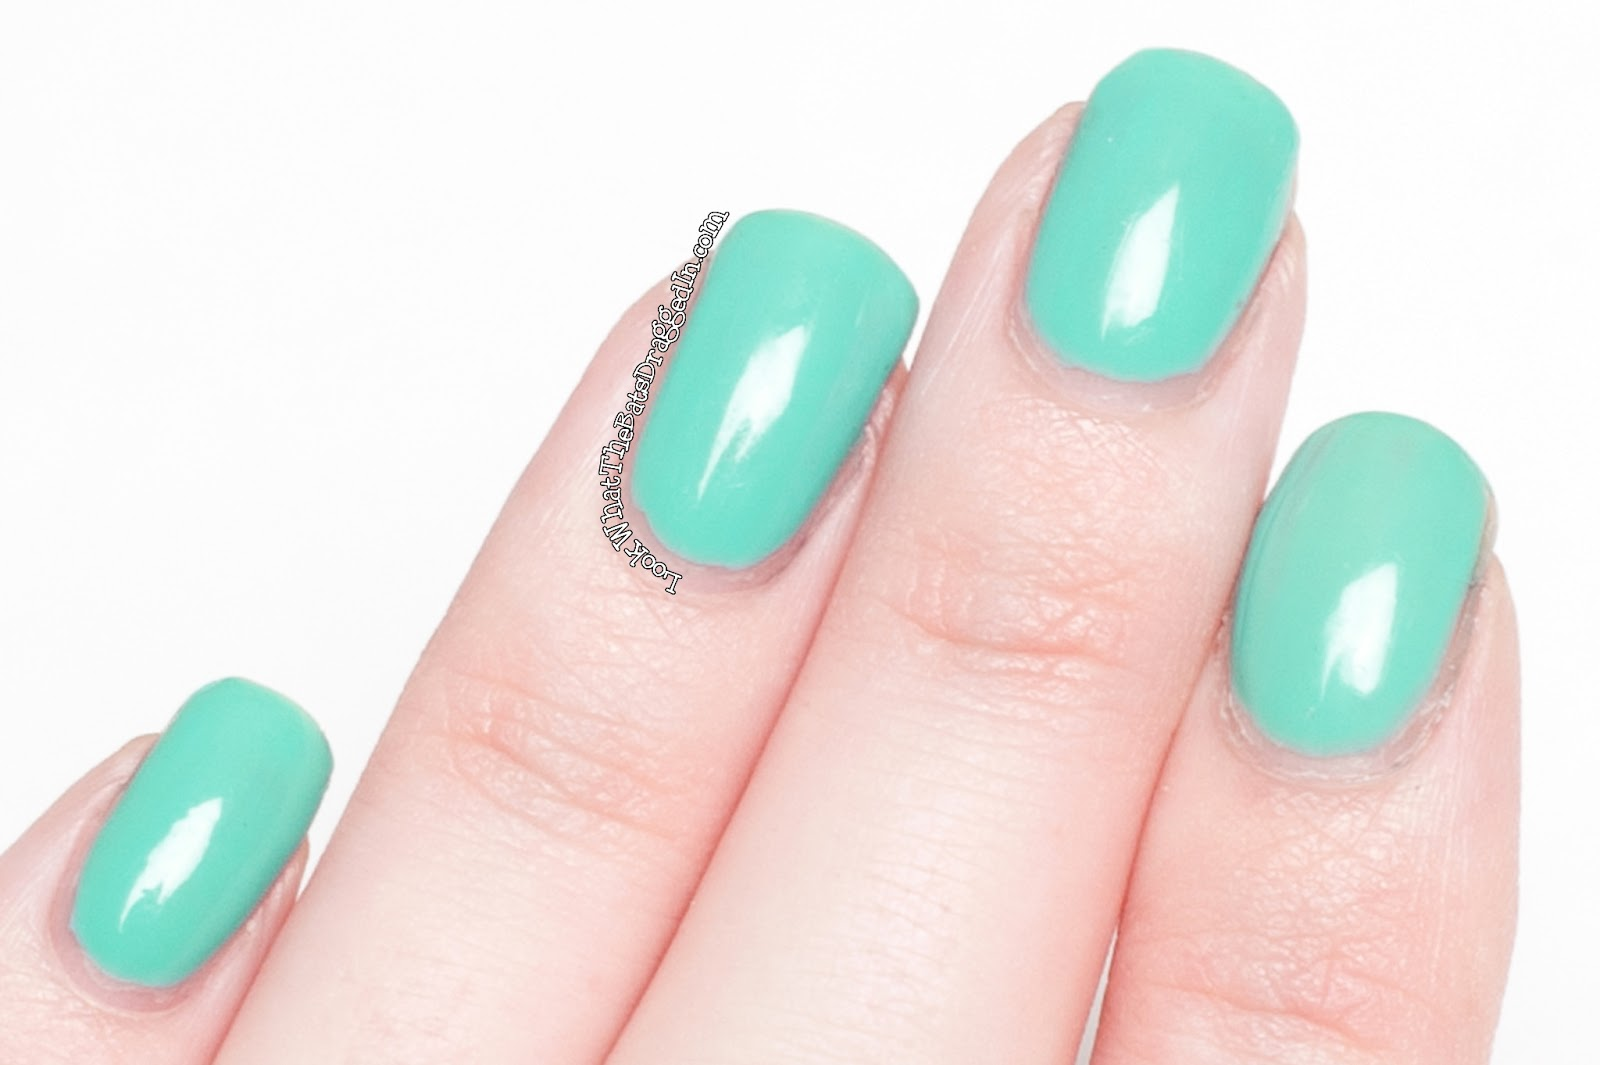 Coupons for jade nails - Tivo roamio plus coupons